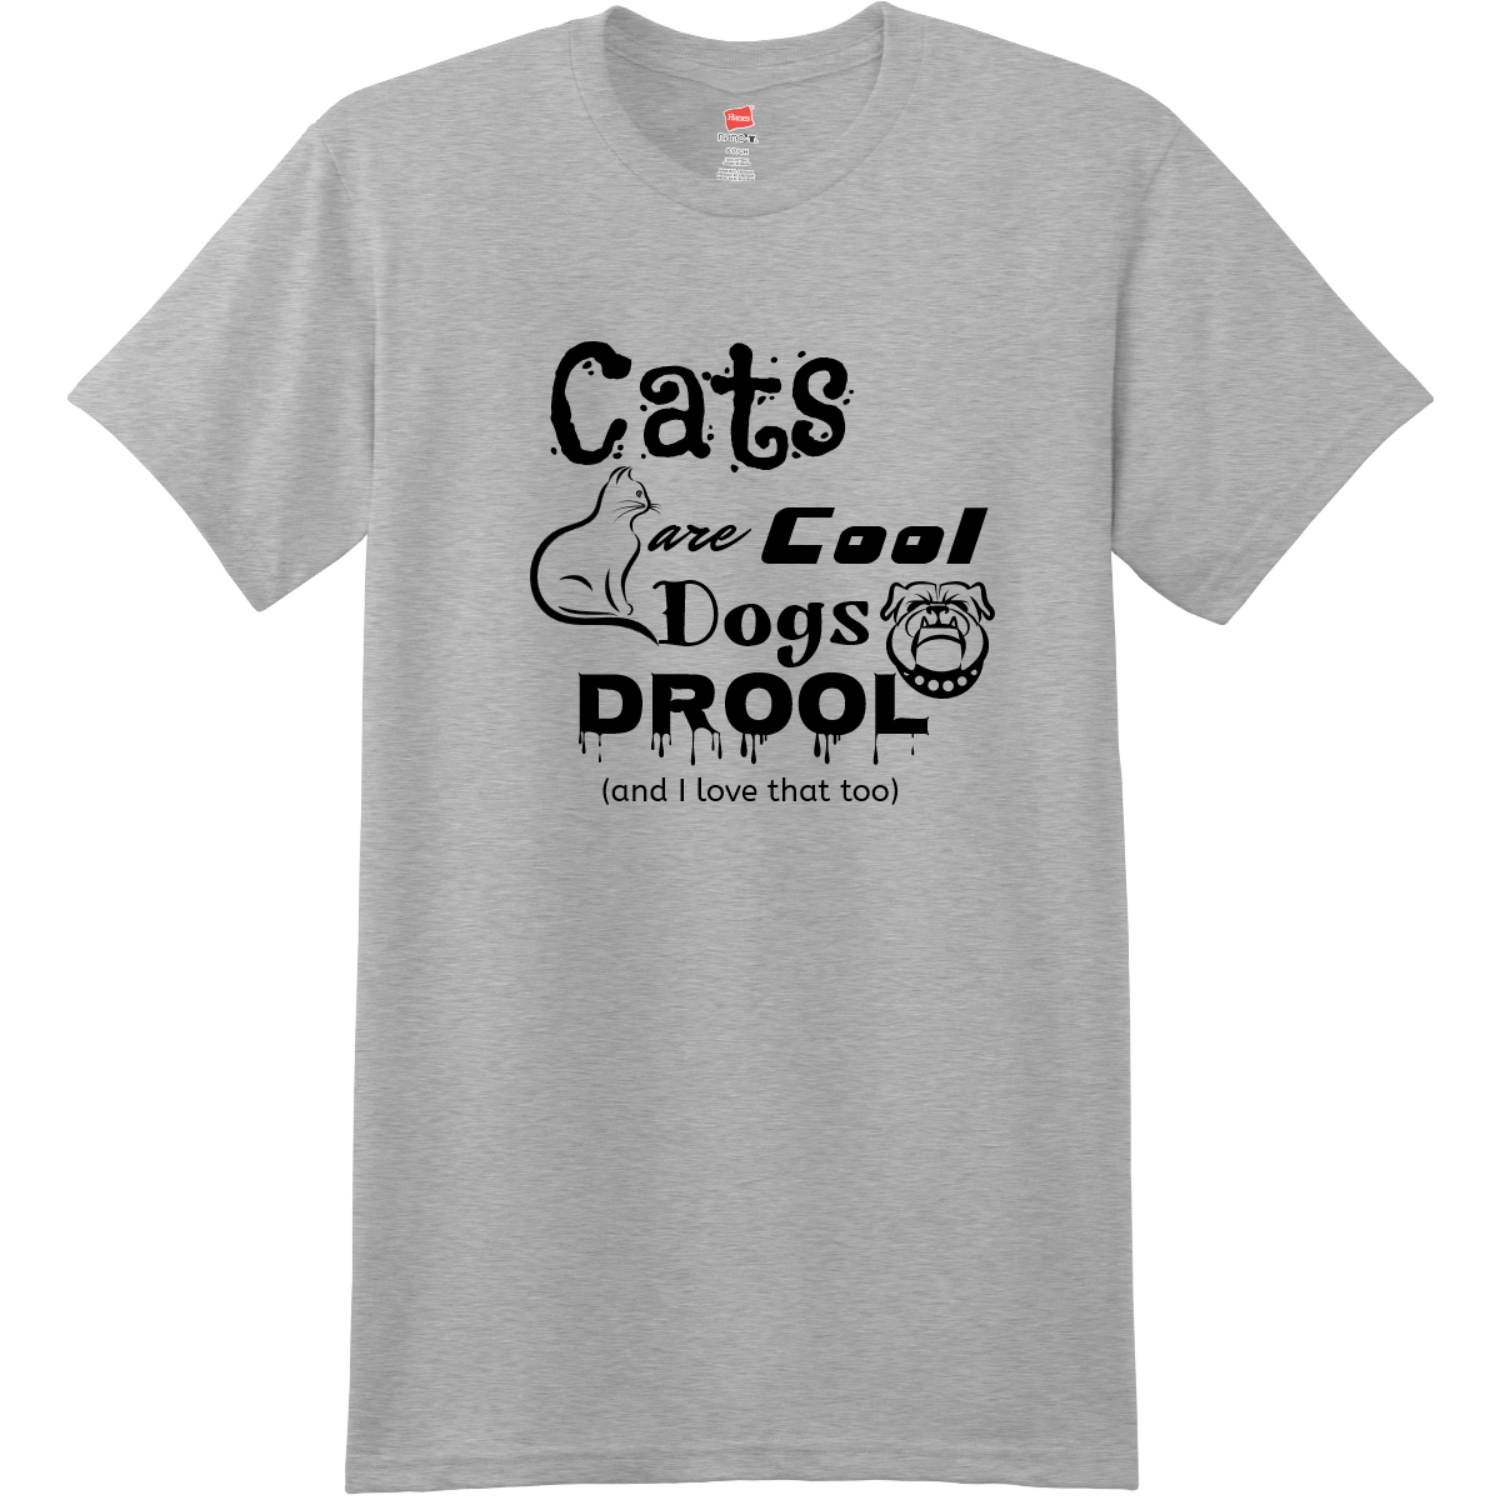 Cats Are Cool Dogs Drool T Shirt Light Steel Hanes Nano 4980 Ringspun Cotton T Shirt